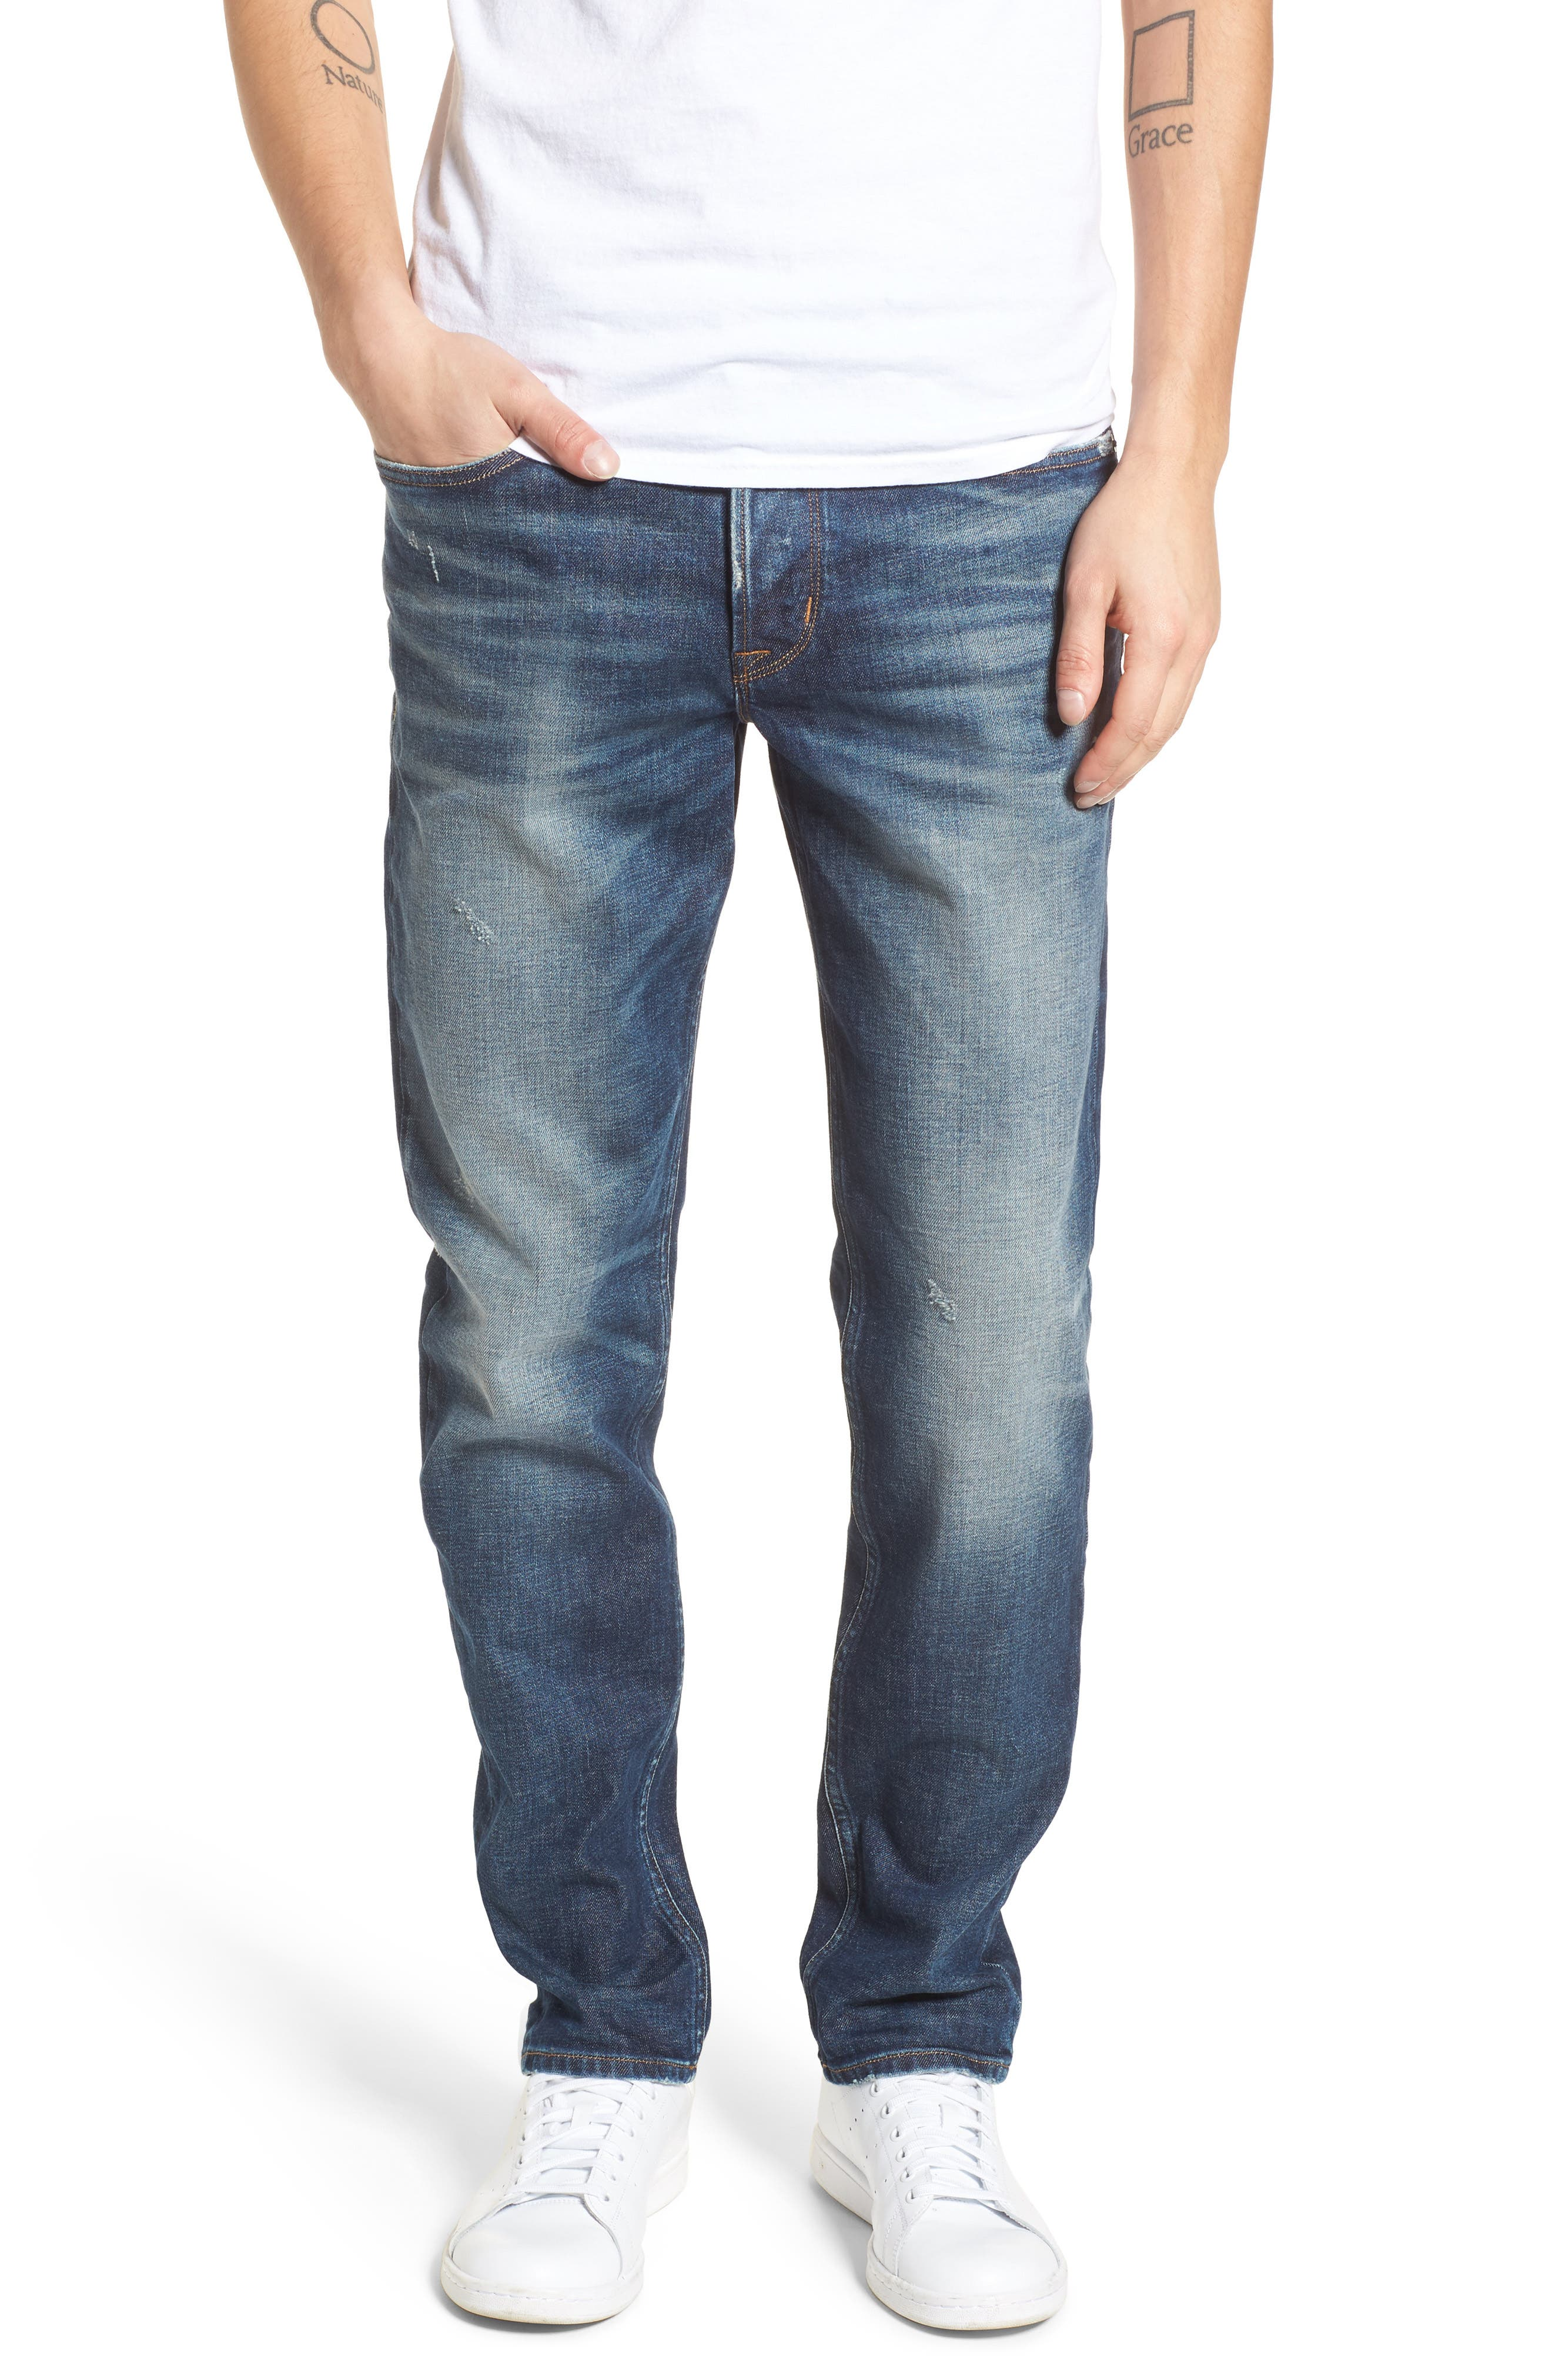 Sartor Slouchy Skinny Fit Jeans,                             Main thumbnail 1, color,                             427